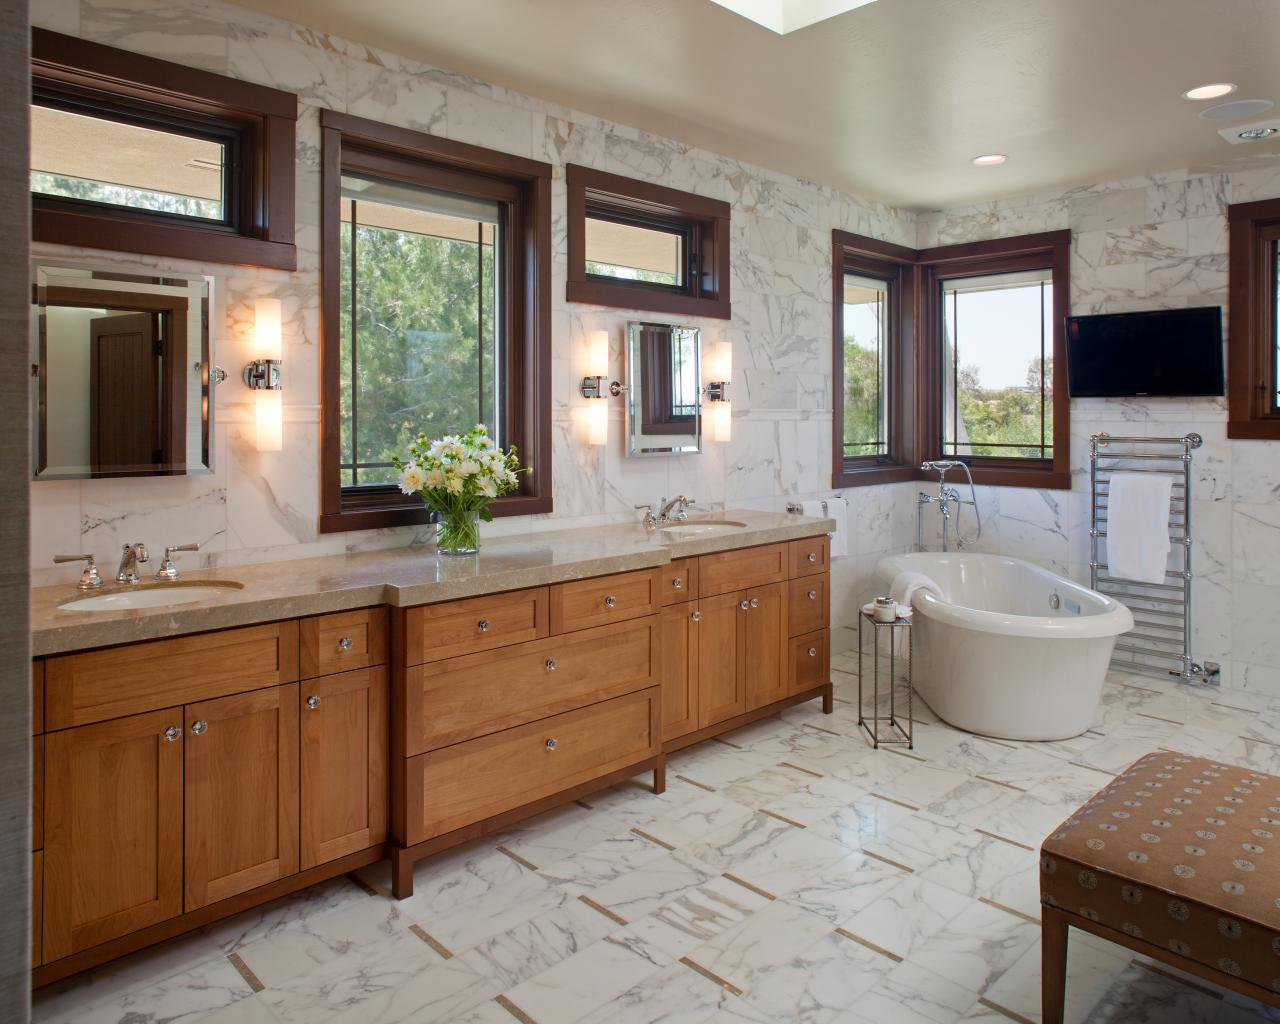 Craftsman Style Bathroom Images : Arts crafts bathrooms pictures ideas tips from hgtv